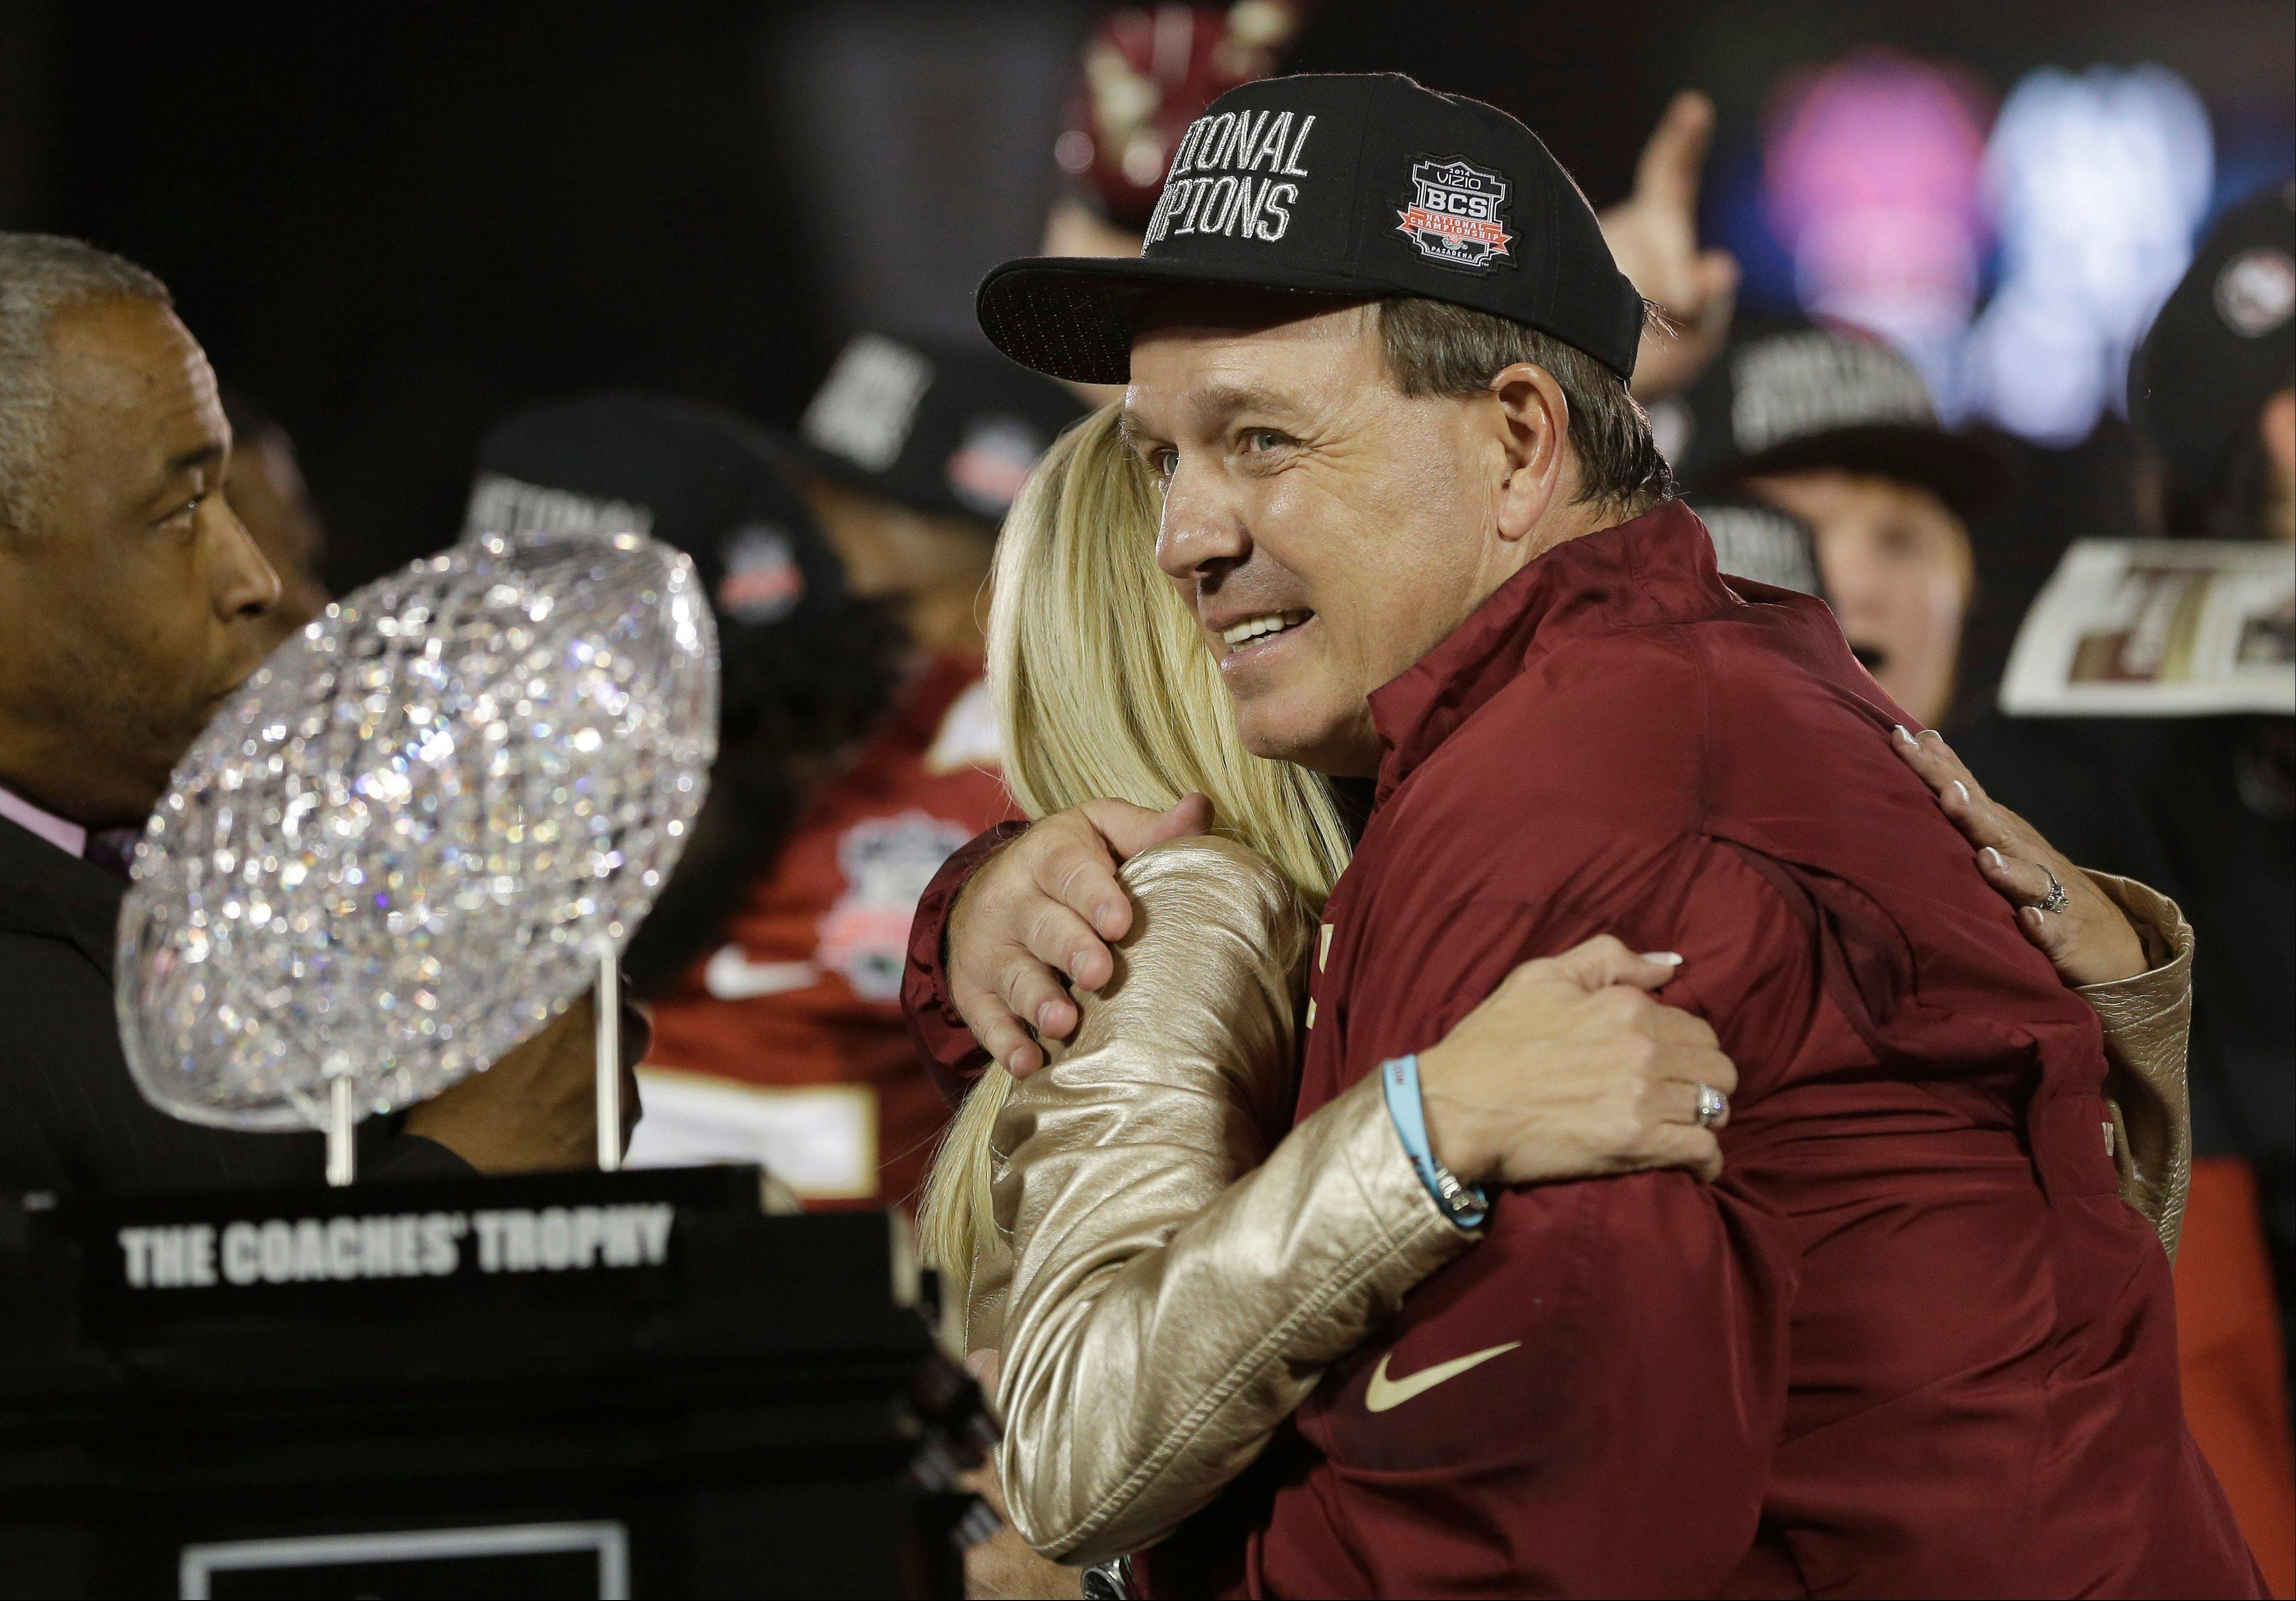 Florida State head coach Jimbo Fisher gets a hug after the NCAA BCS National Championship college football game against Auburn Monday, Jan. 6, 2014, in Pasadena, Calif. Florida State won 34-31.